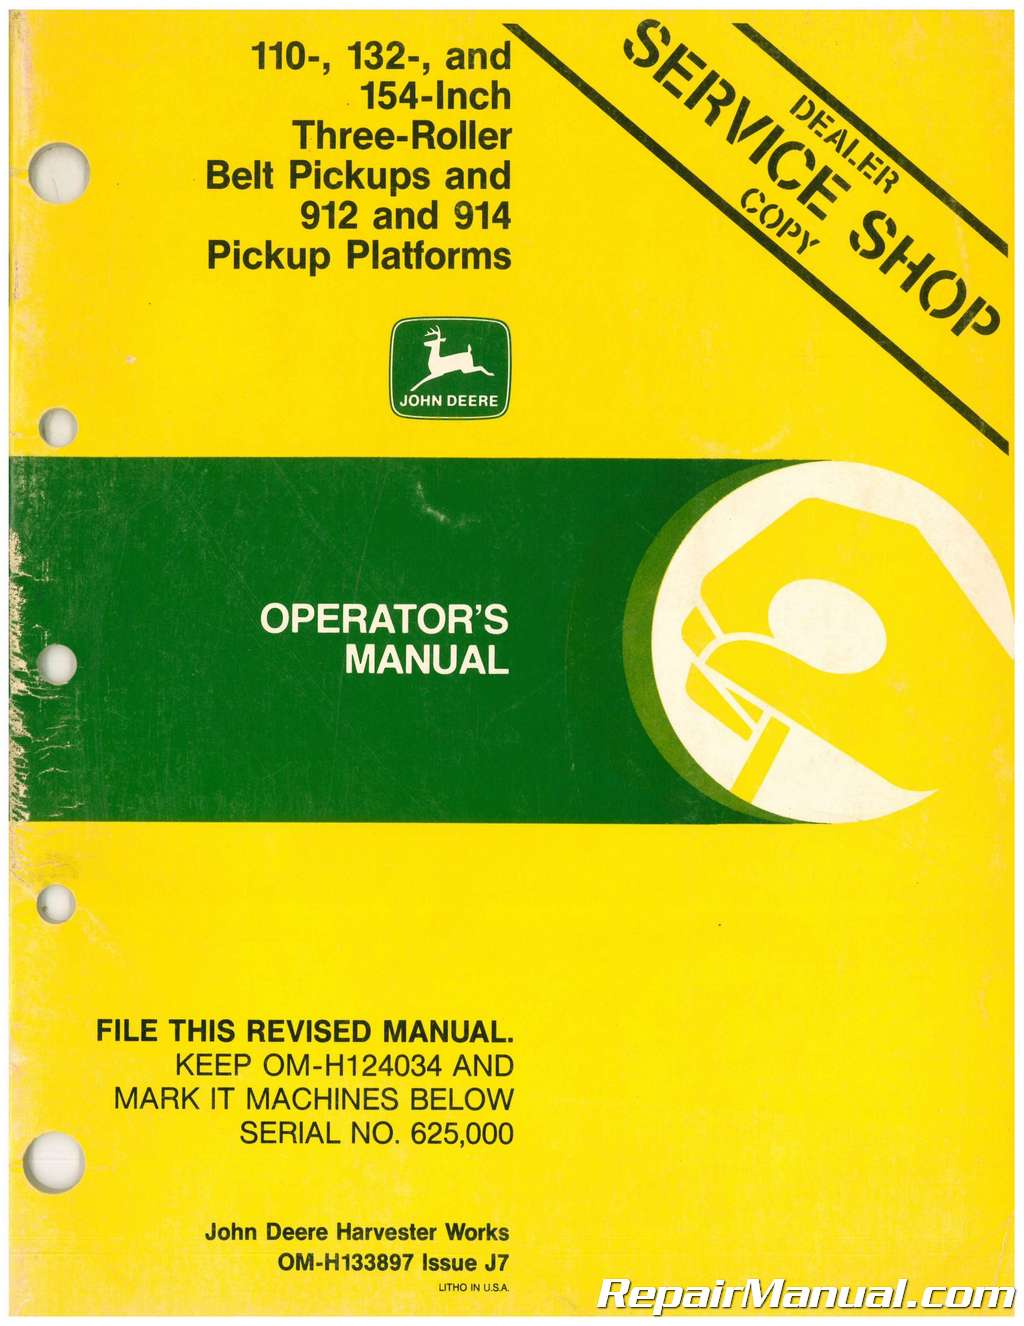 Used John Deere 110 132 and 154 In Three Roller Belt Pickups and 912 And  914 Pickup Platforms Operators Manual